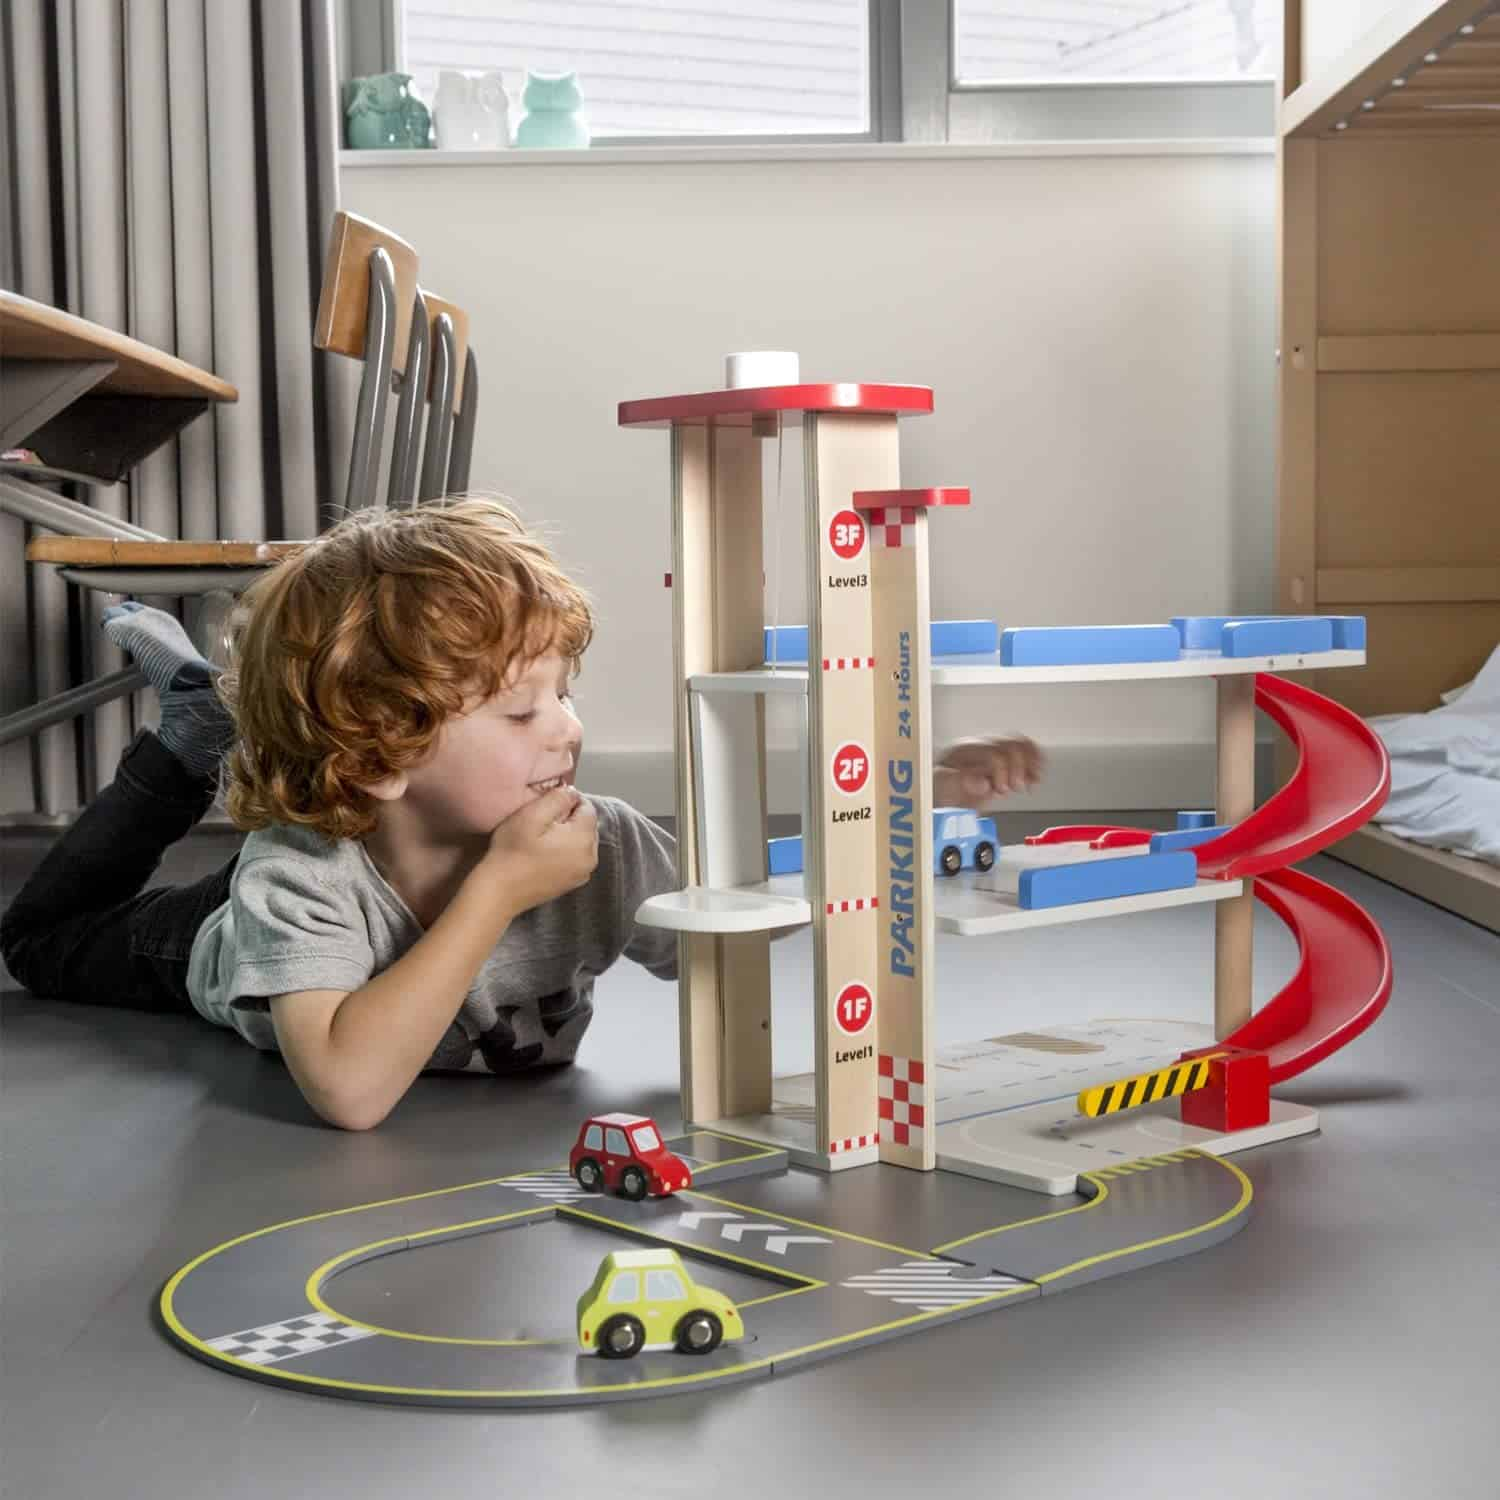 Best toy parking garage with lift: New Classic Toys